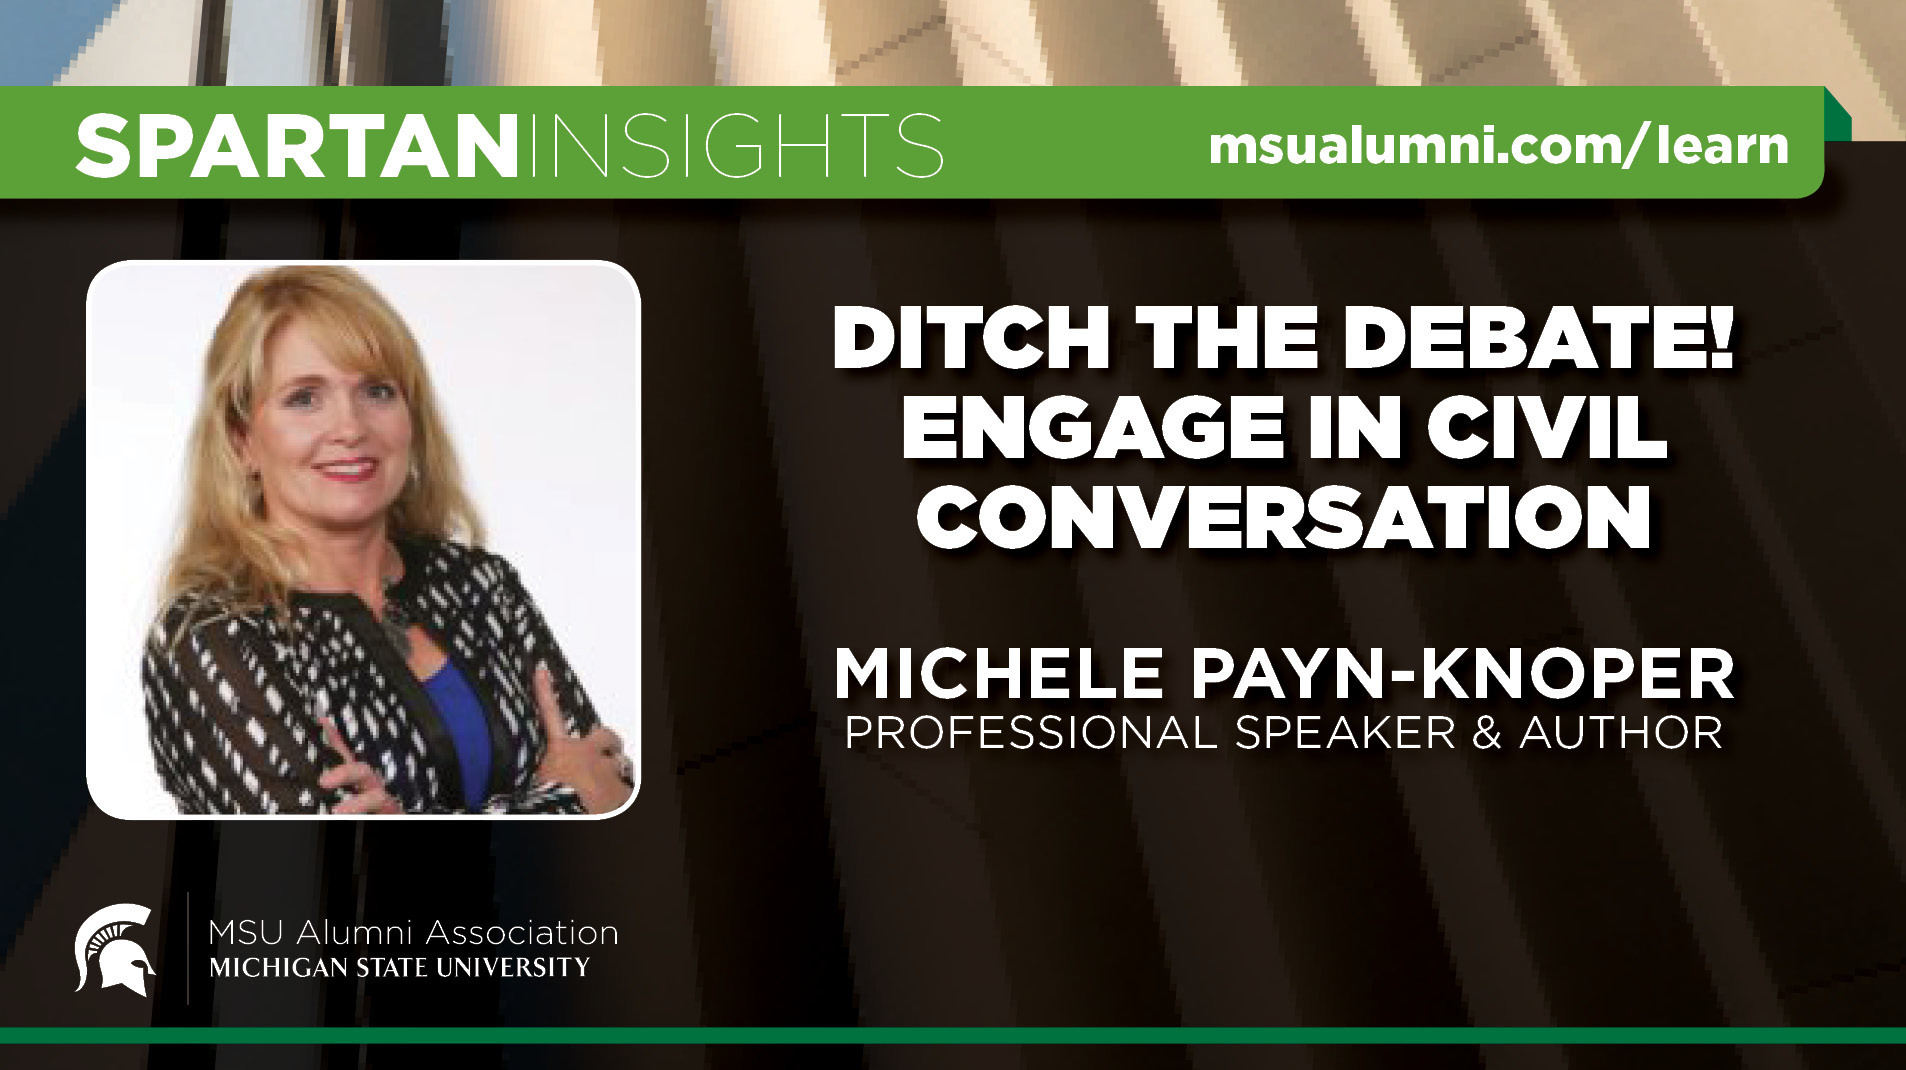 webinar cover image for Michele Payn-Knoper | Ditch The Debate! Engage In Civil Conversation